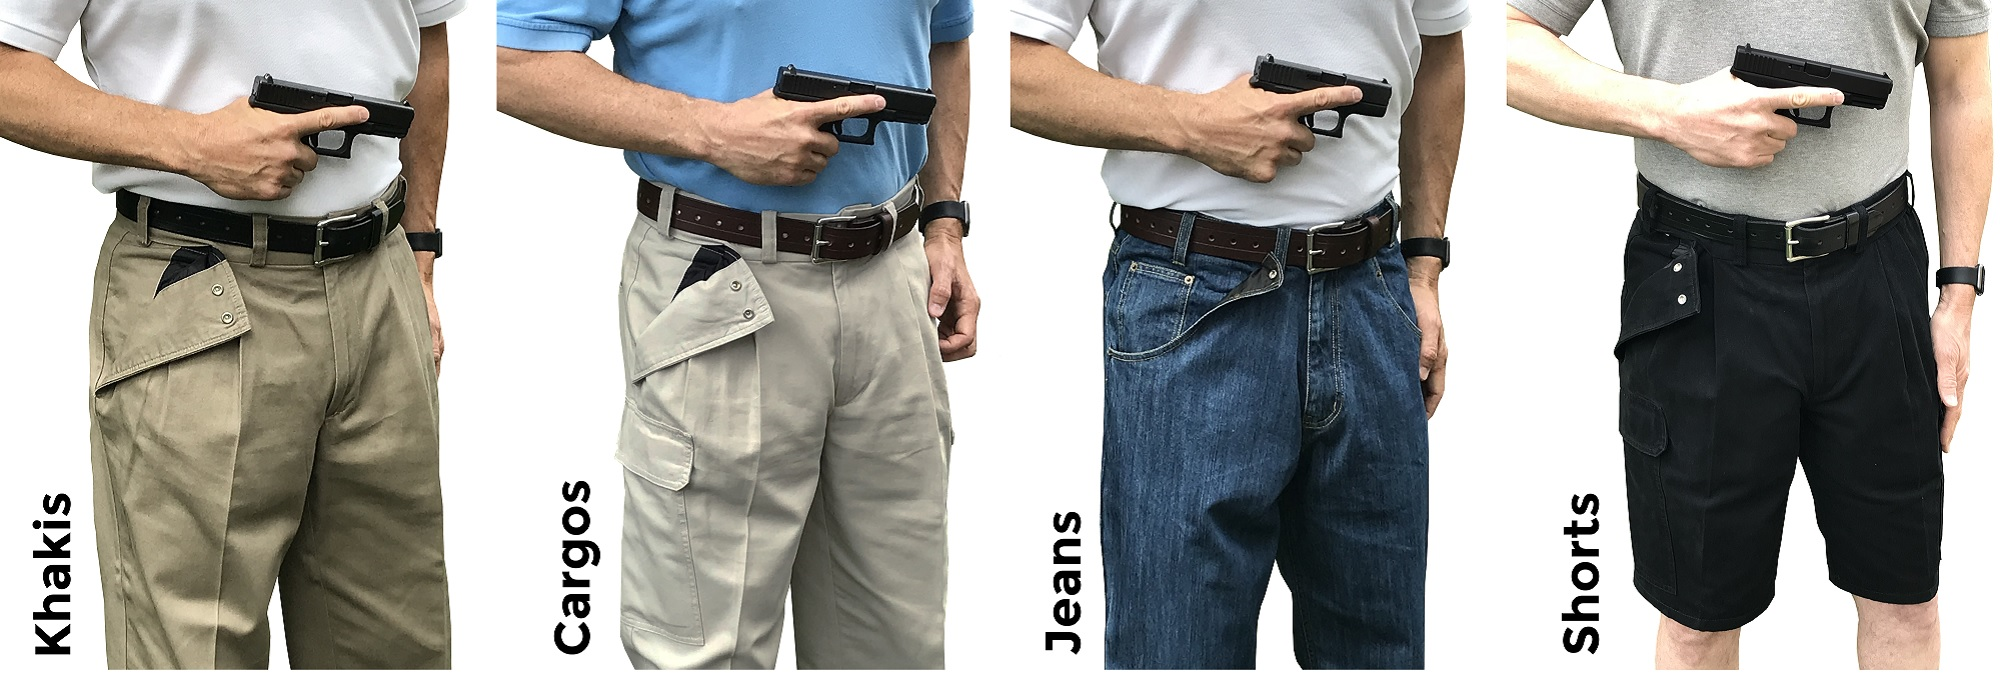 Concealed Carry Holsters And Concealed Carry Pants Comfortable Deep Fast